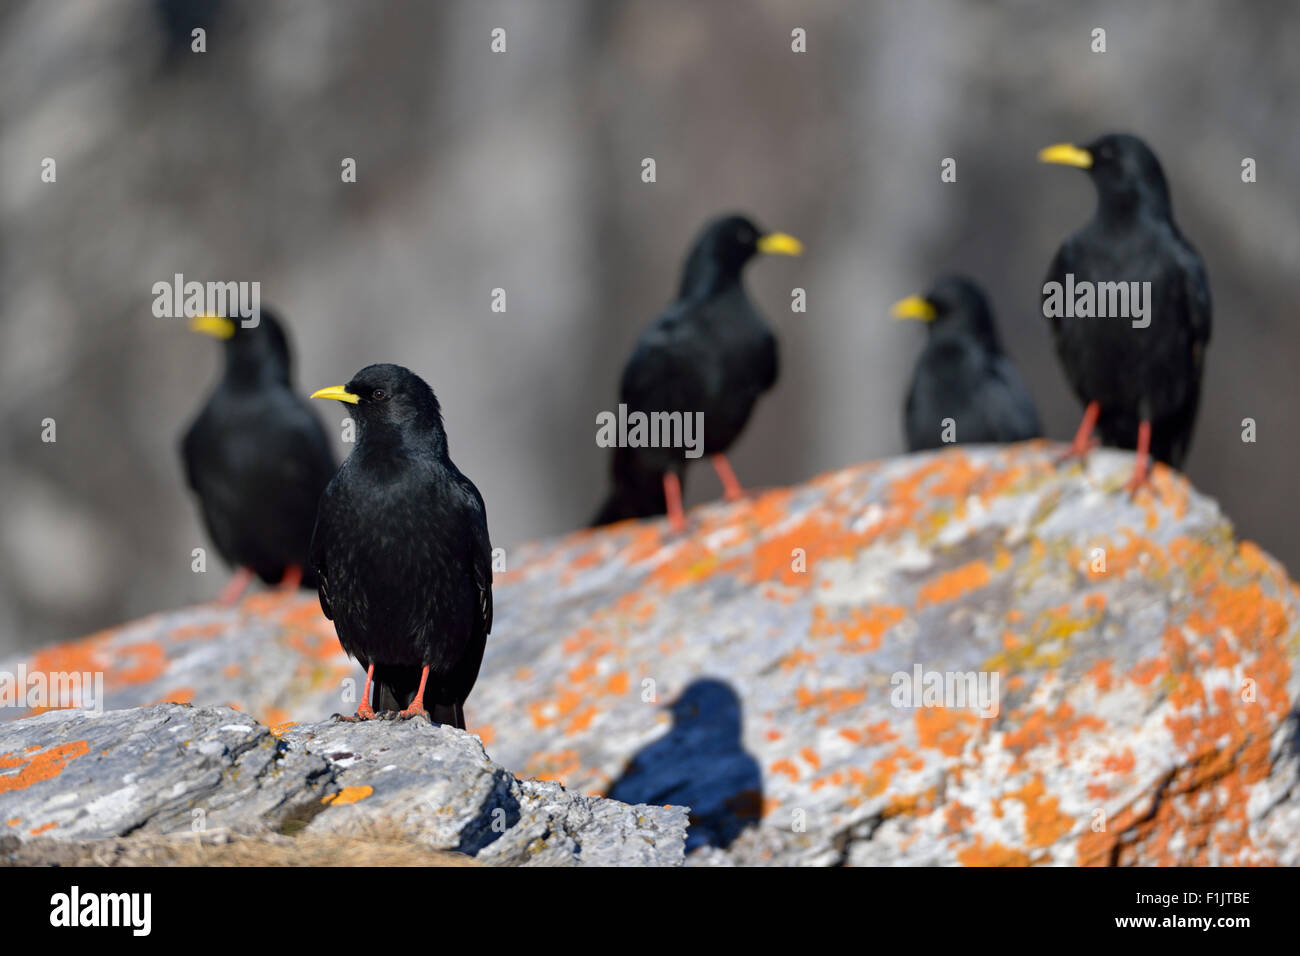 A flock of Alpine Chough / Alpendohle ( Pyrrhocorax graculus ) sitting on lichens covered stones. - Stock Image